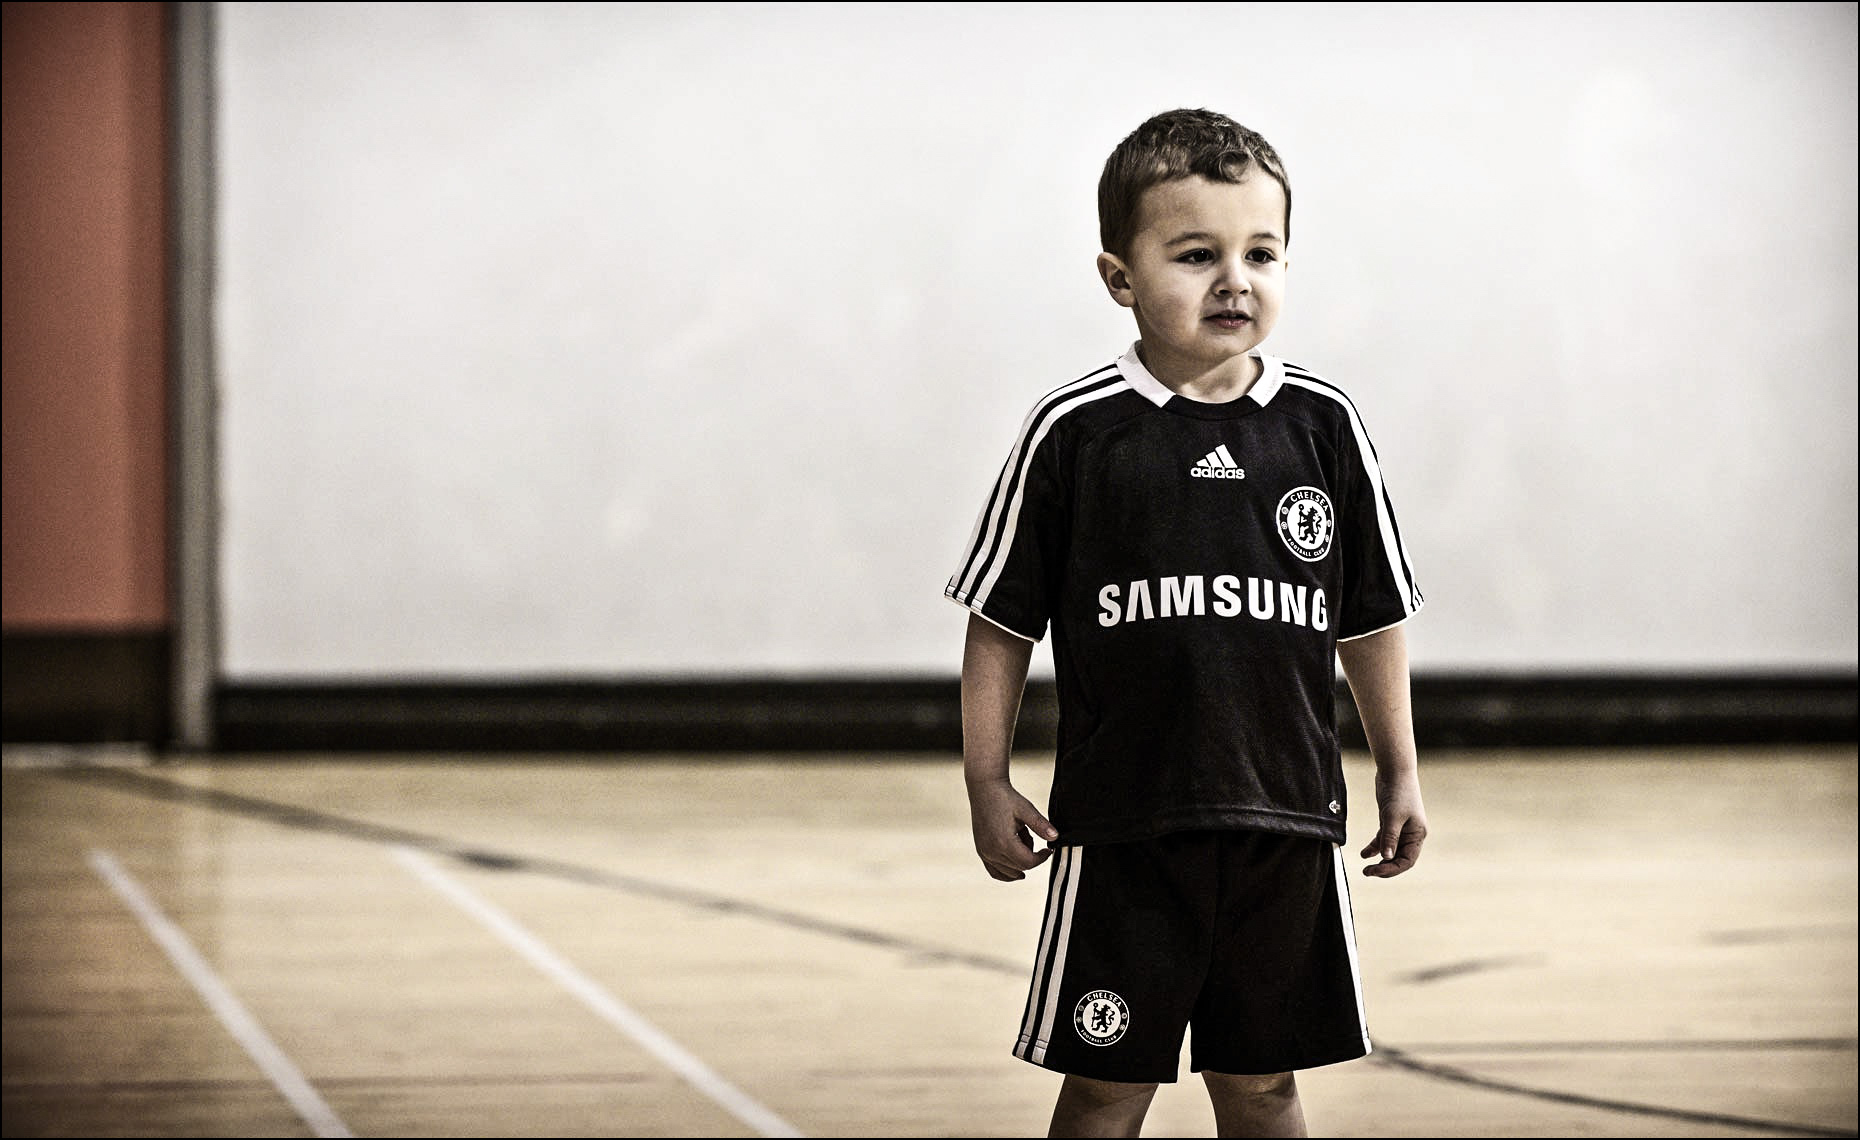 40 youth soccer football charity Scotland  ©Paul Hampton Photographer Glasgow